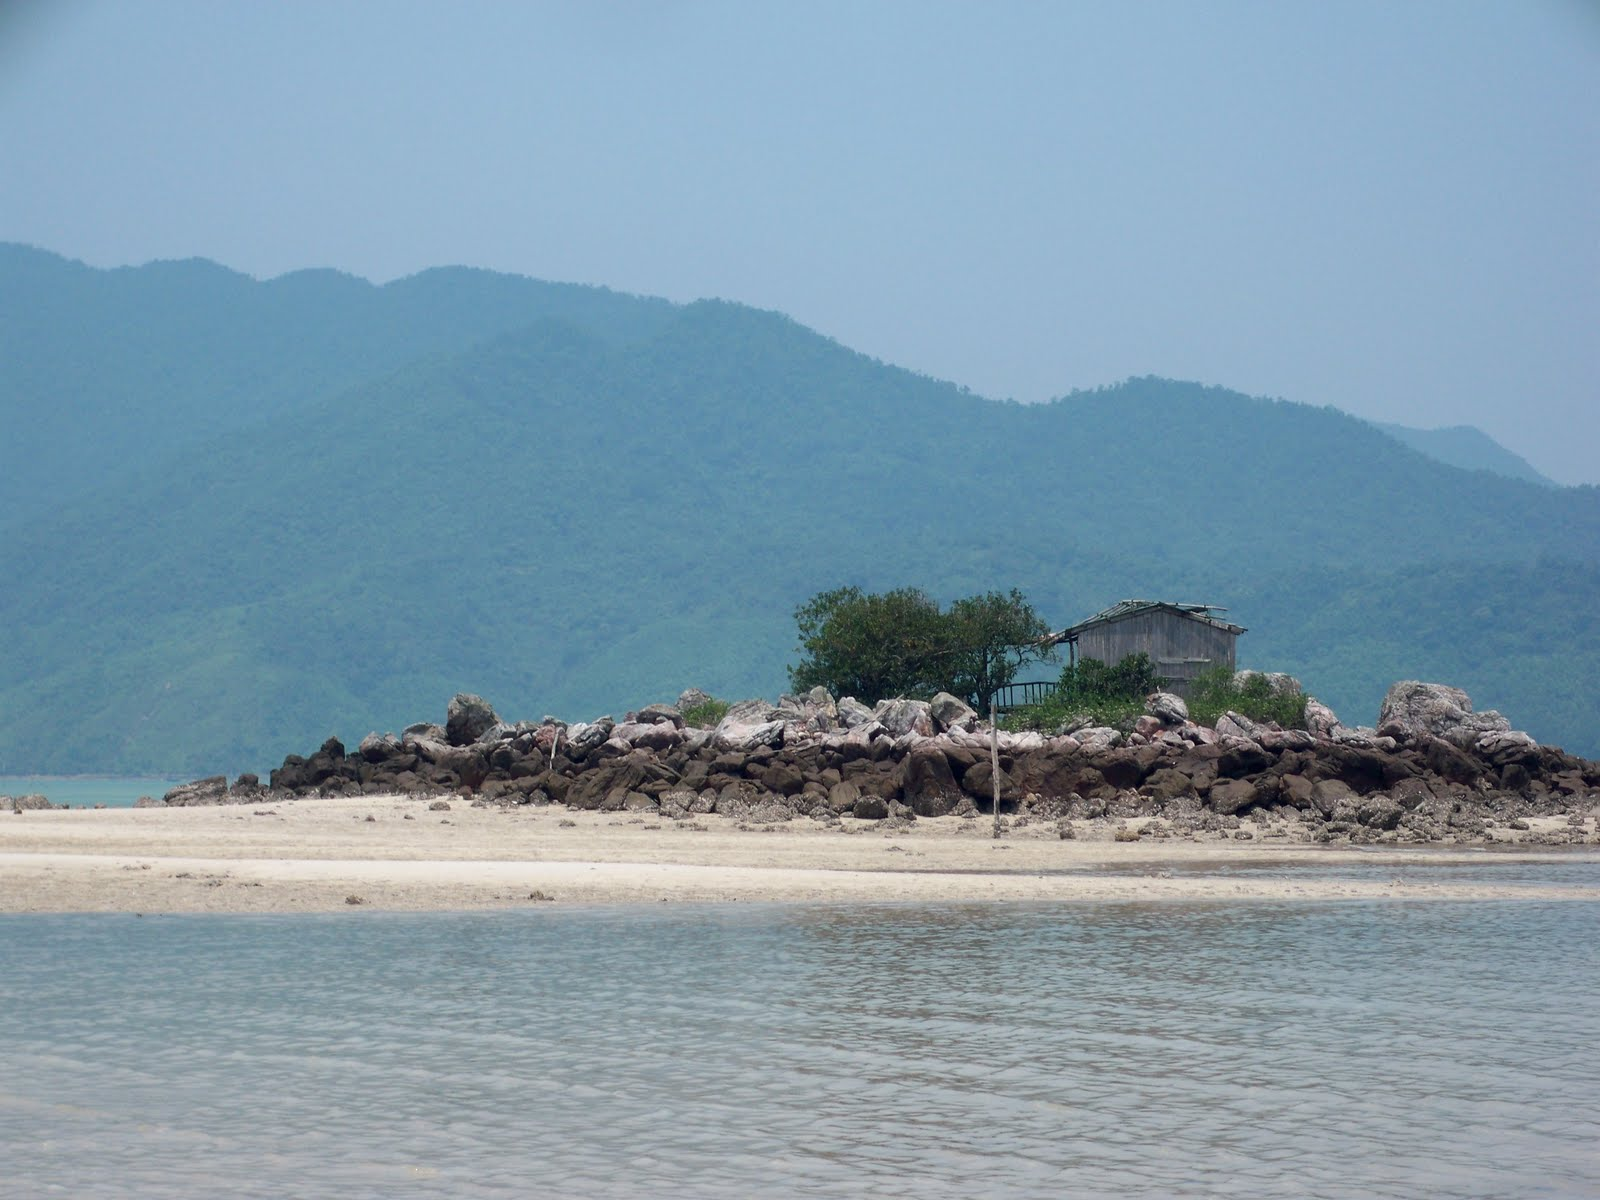 Deserted Tropical Island: Travels With Charlie: Quan Lan Island